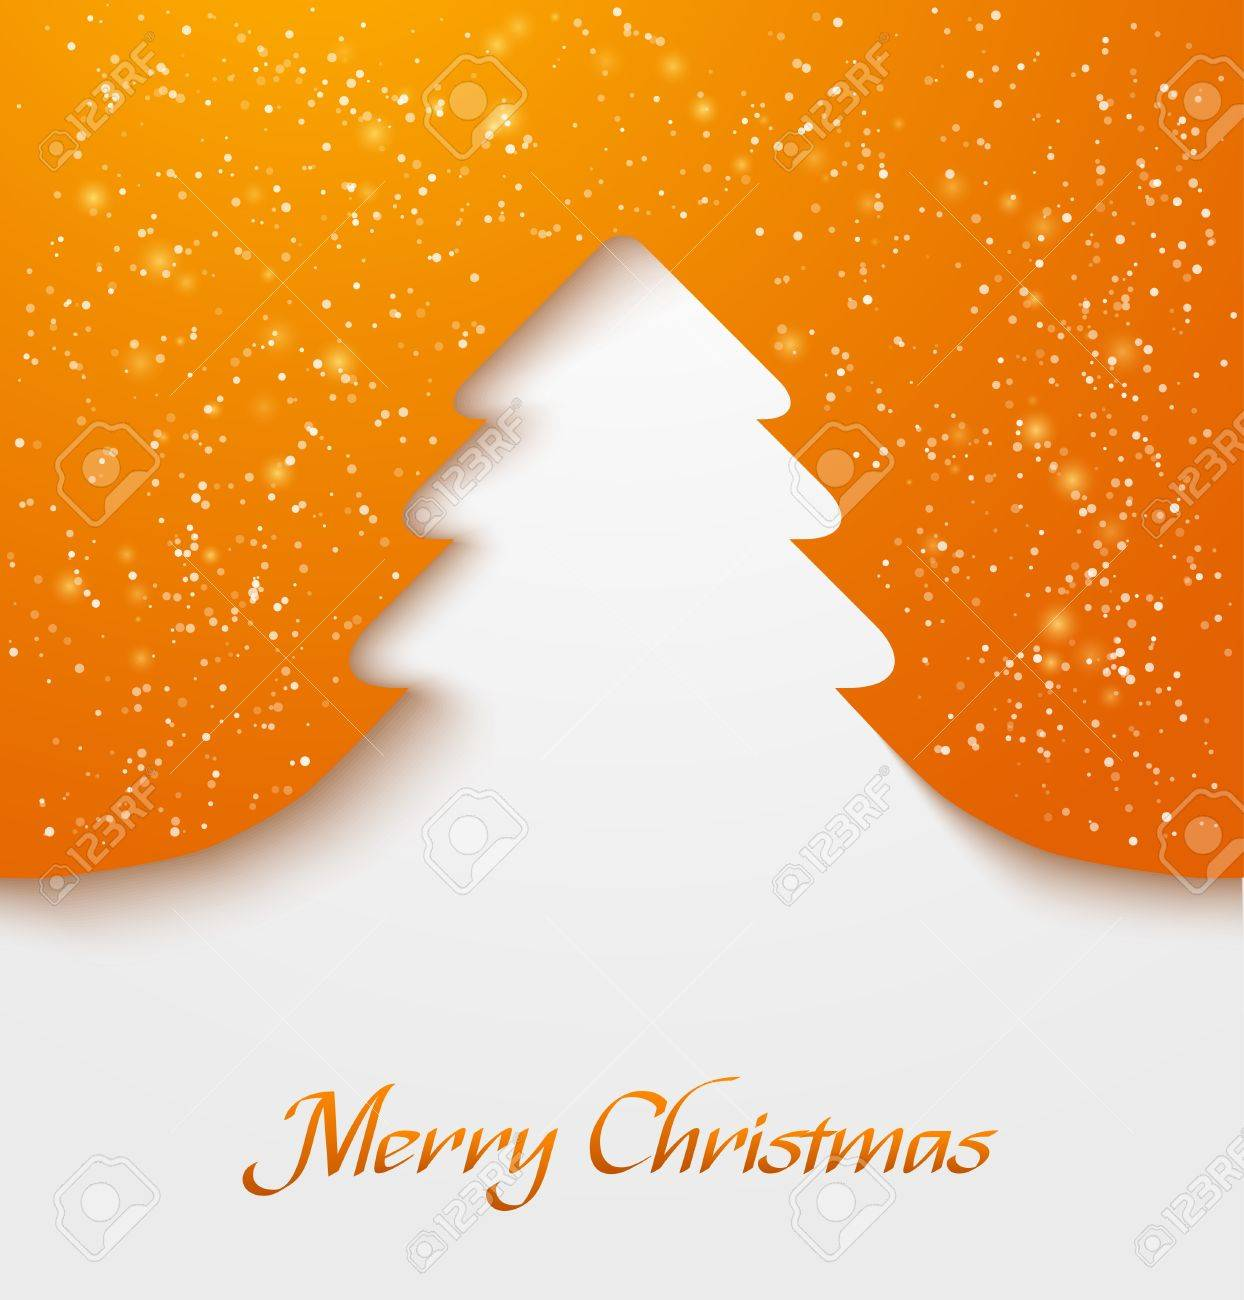 Orange abstract christmas tree applique with snow particles illustration - 17036933